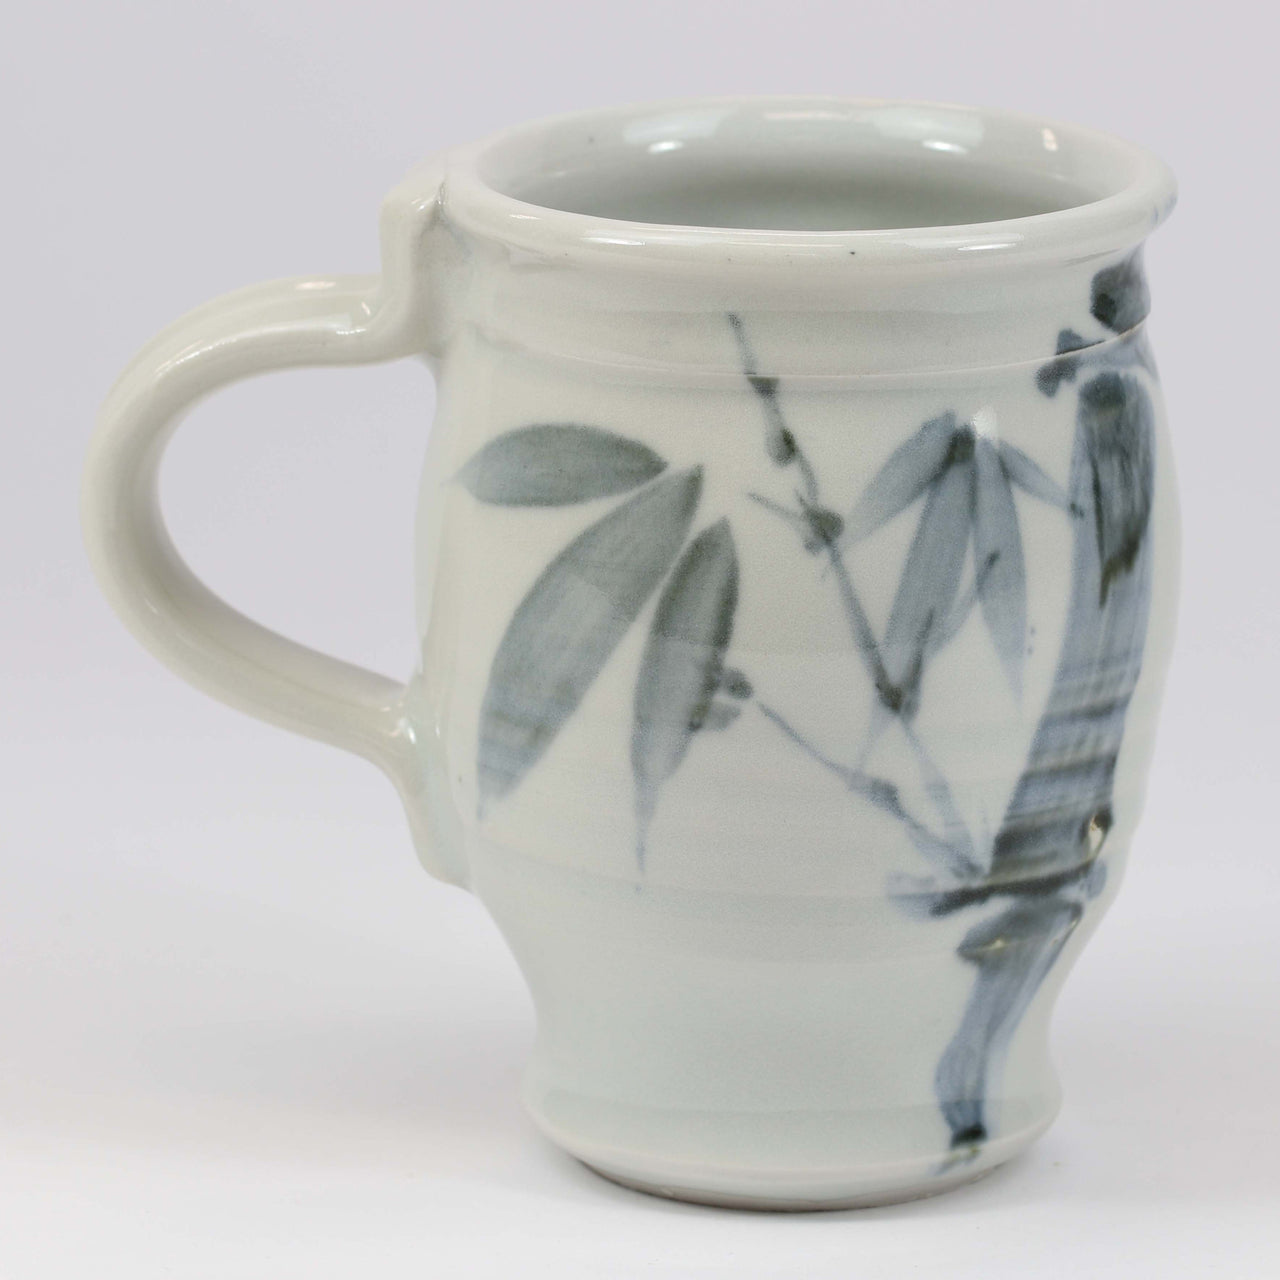 Large 16 oz. Mug: Clear Celadon Bamboo Pattern